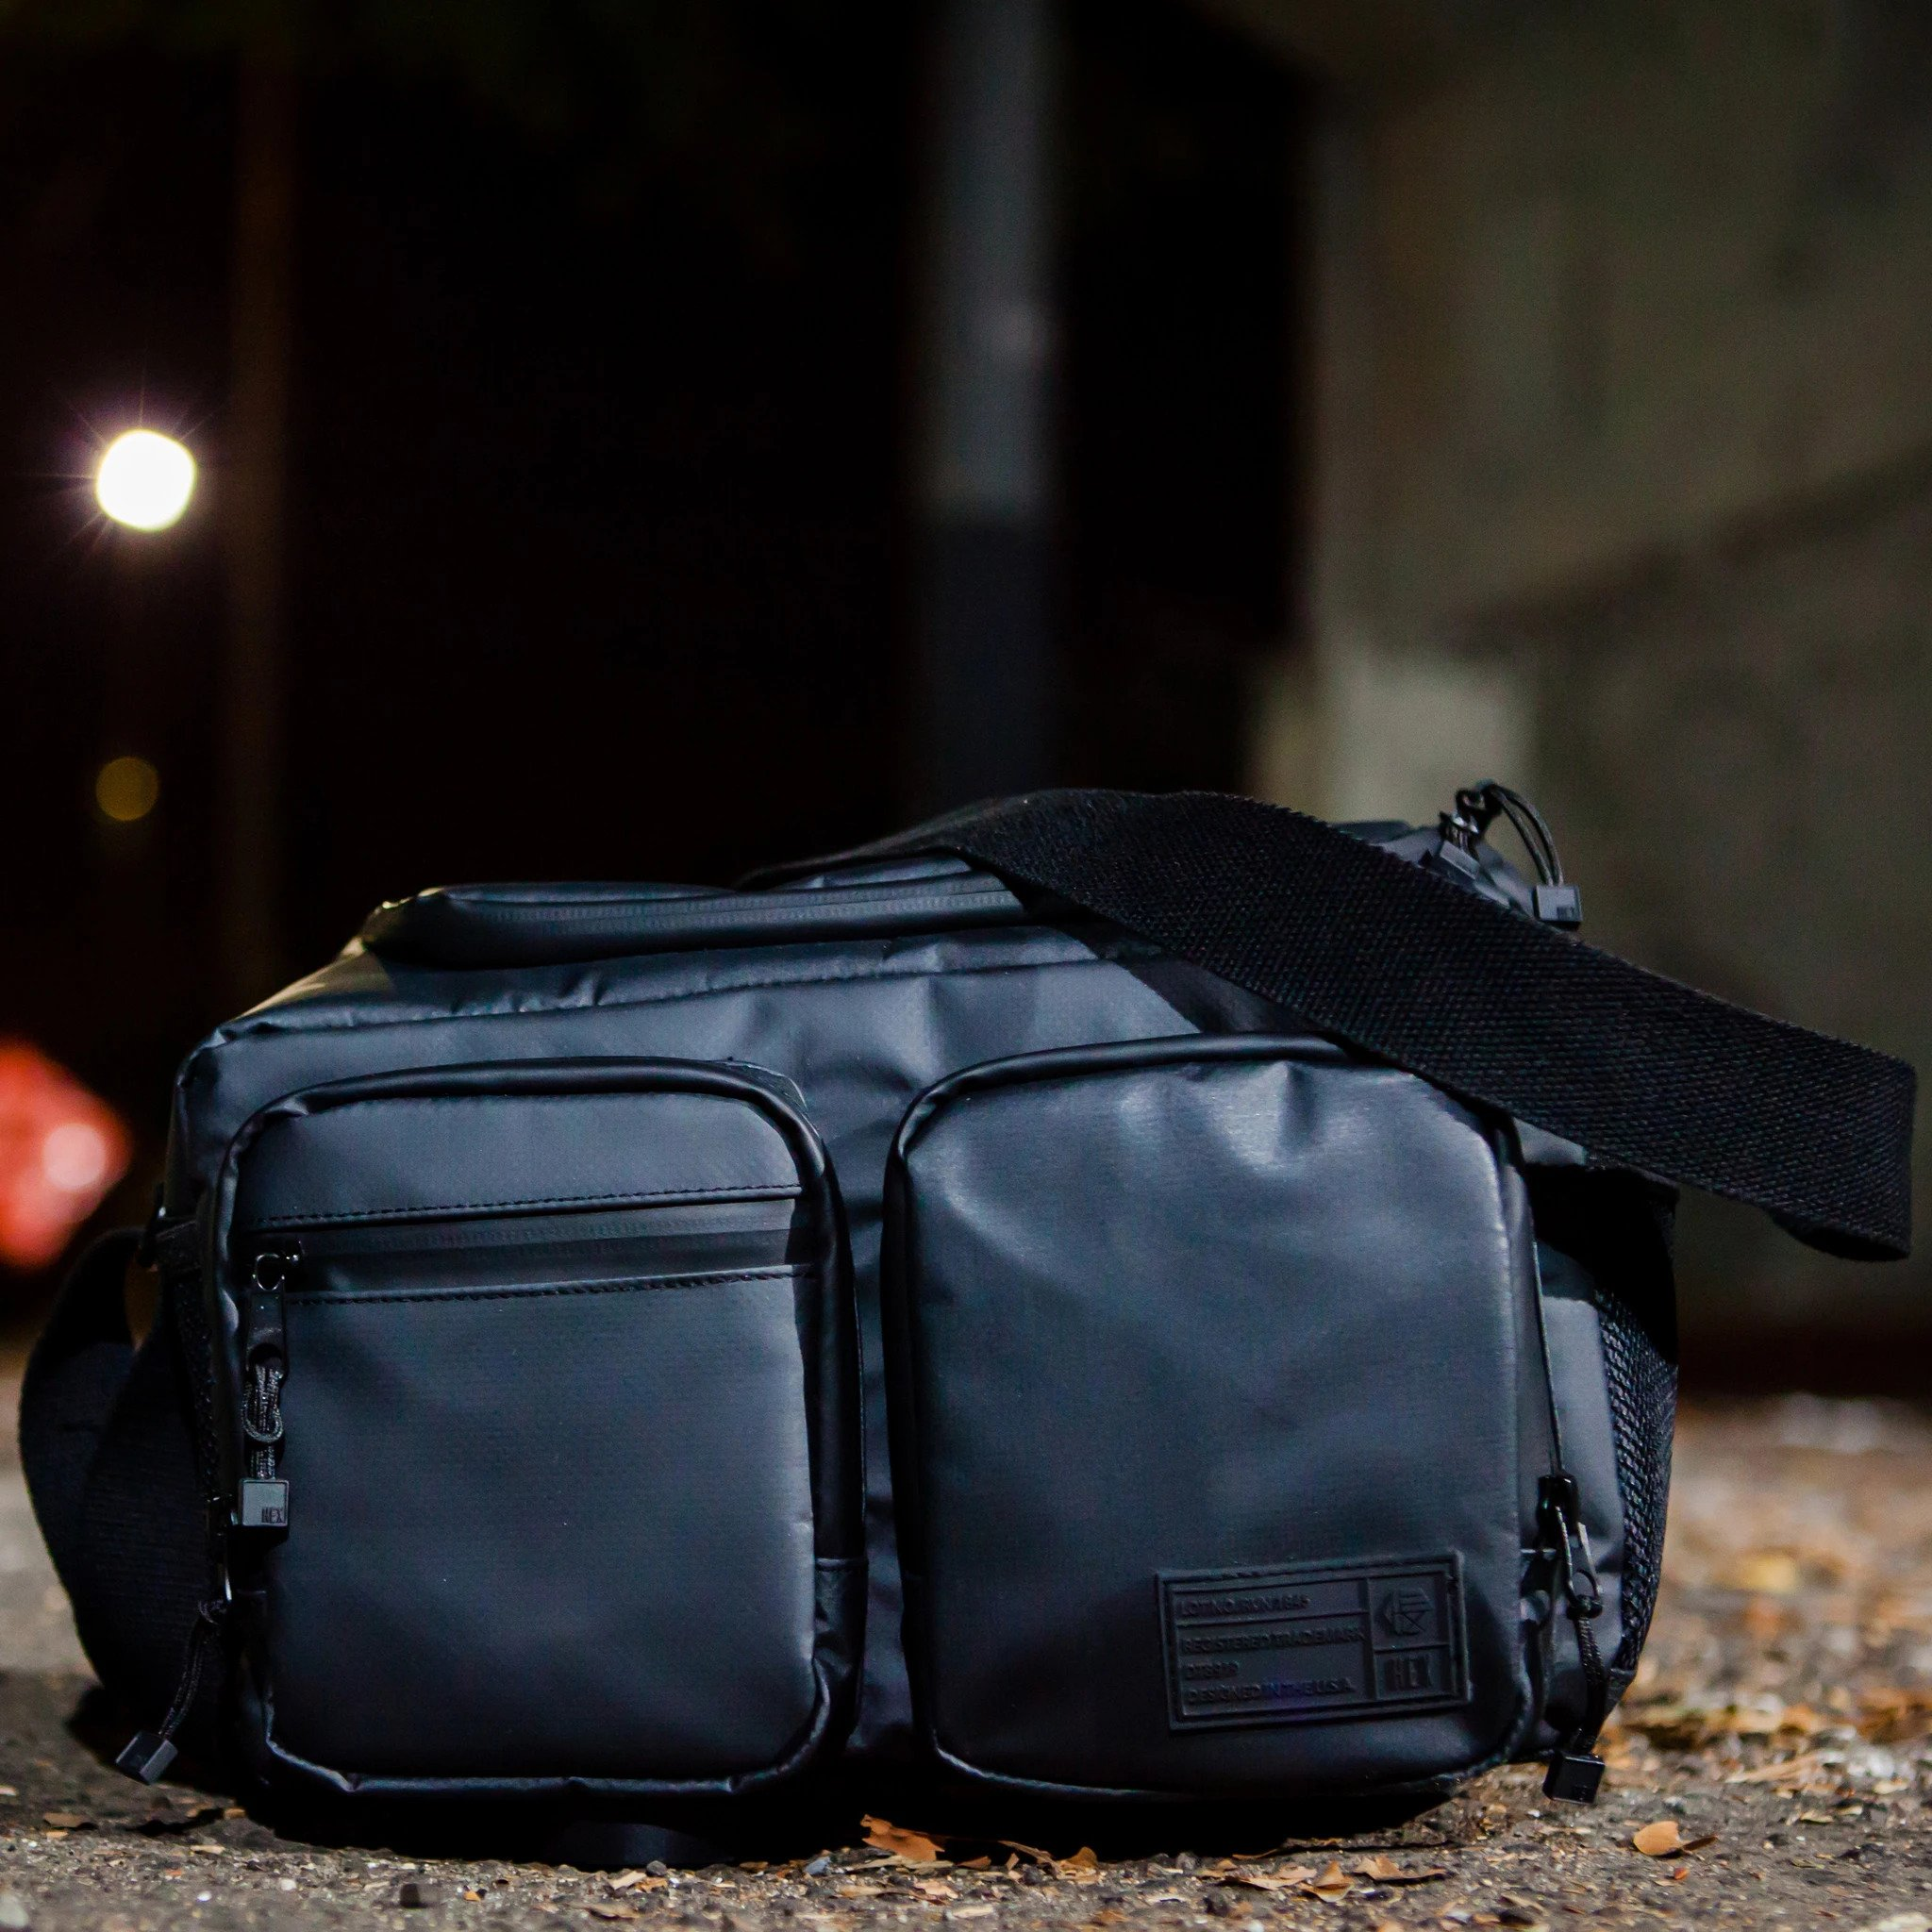 This Camera Bag Is for You If You Have DSLR and Mirrorless Gear image